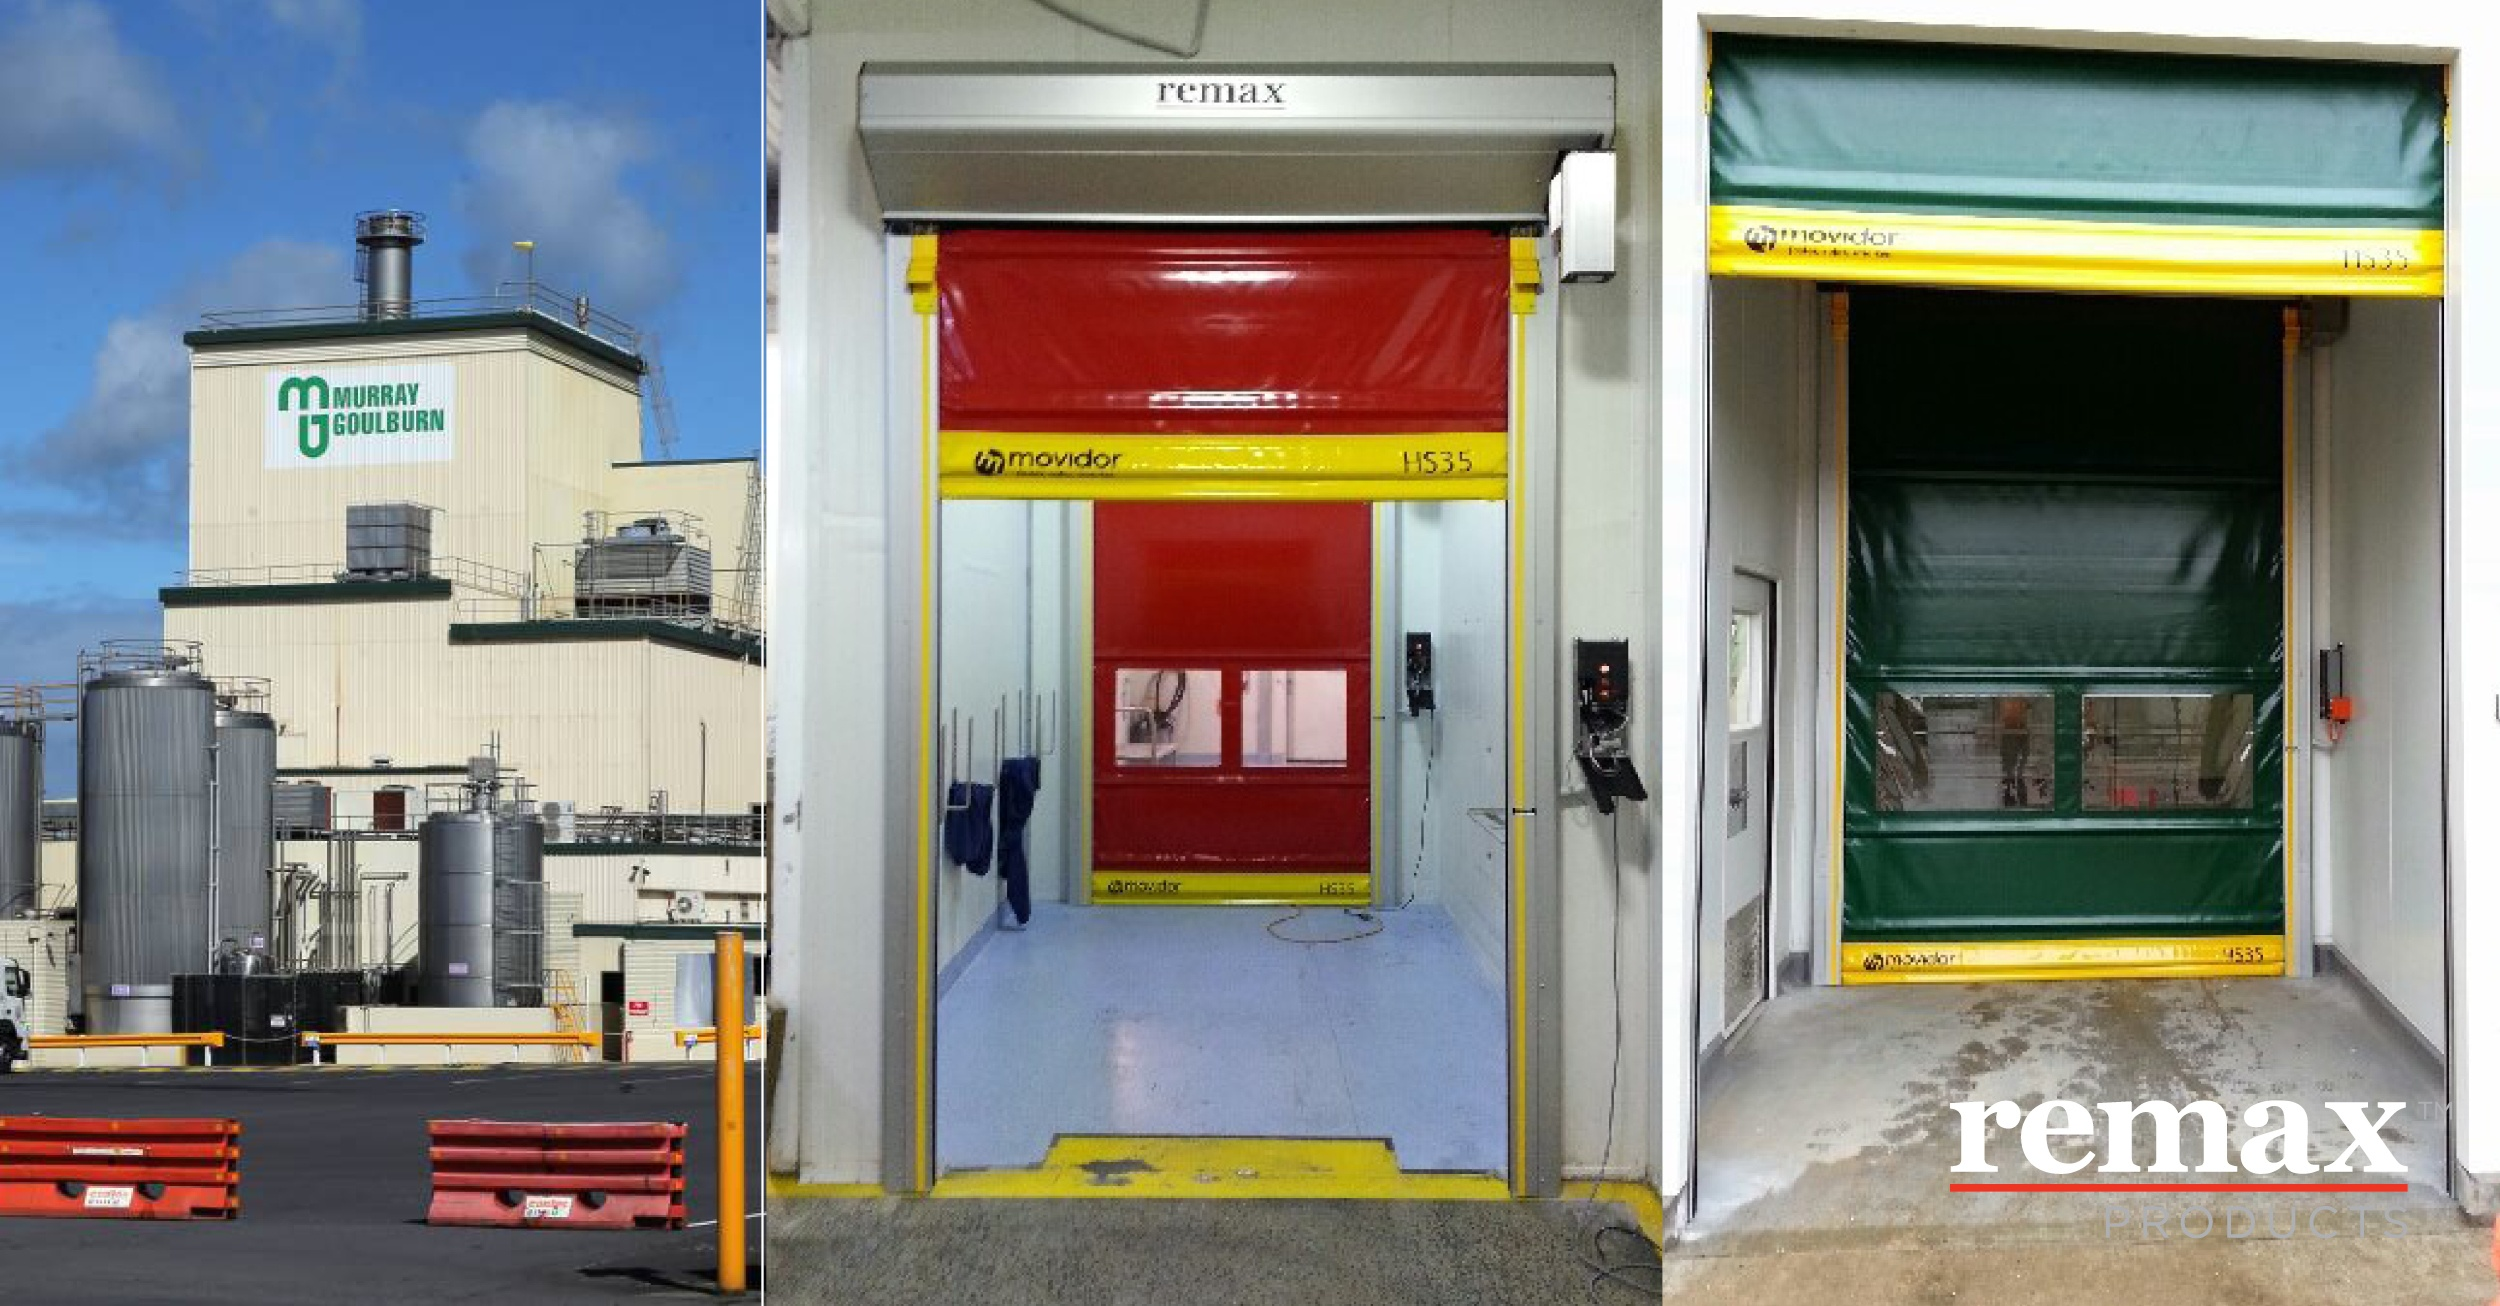 Air lock doors for temperature control and dust control in your warehouse